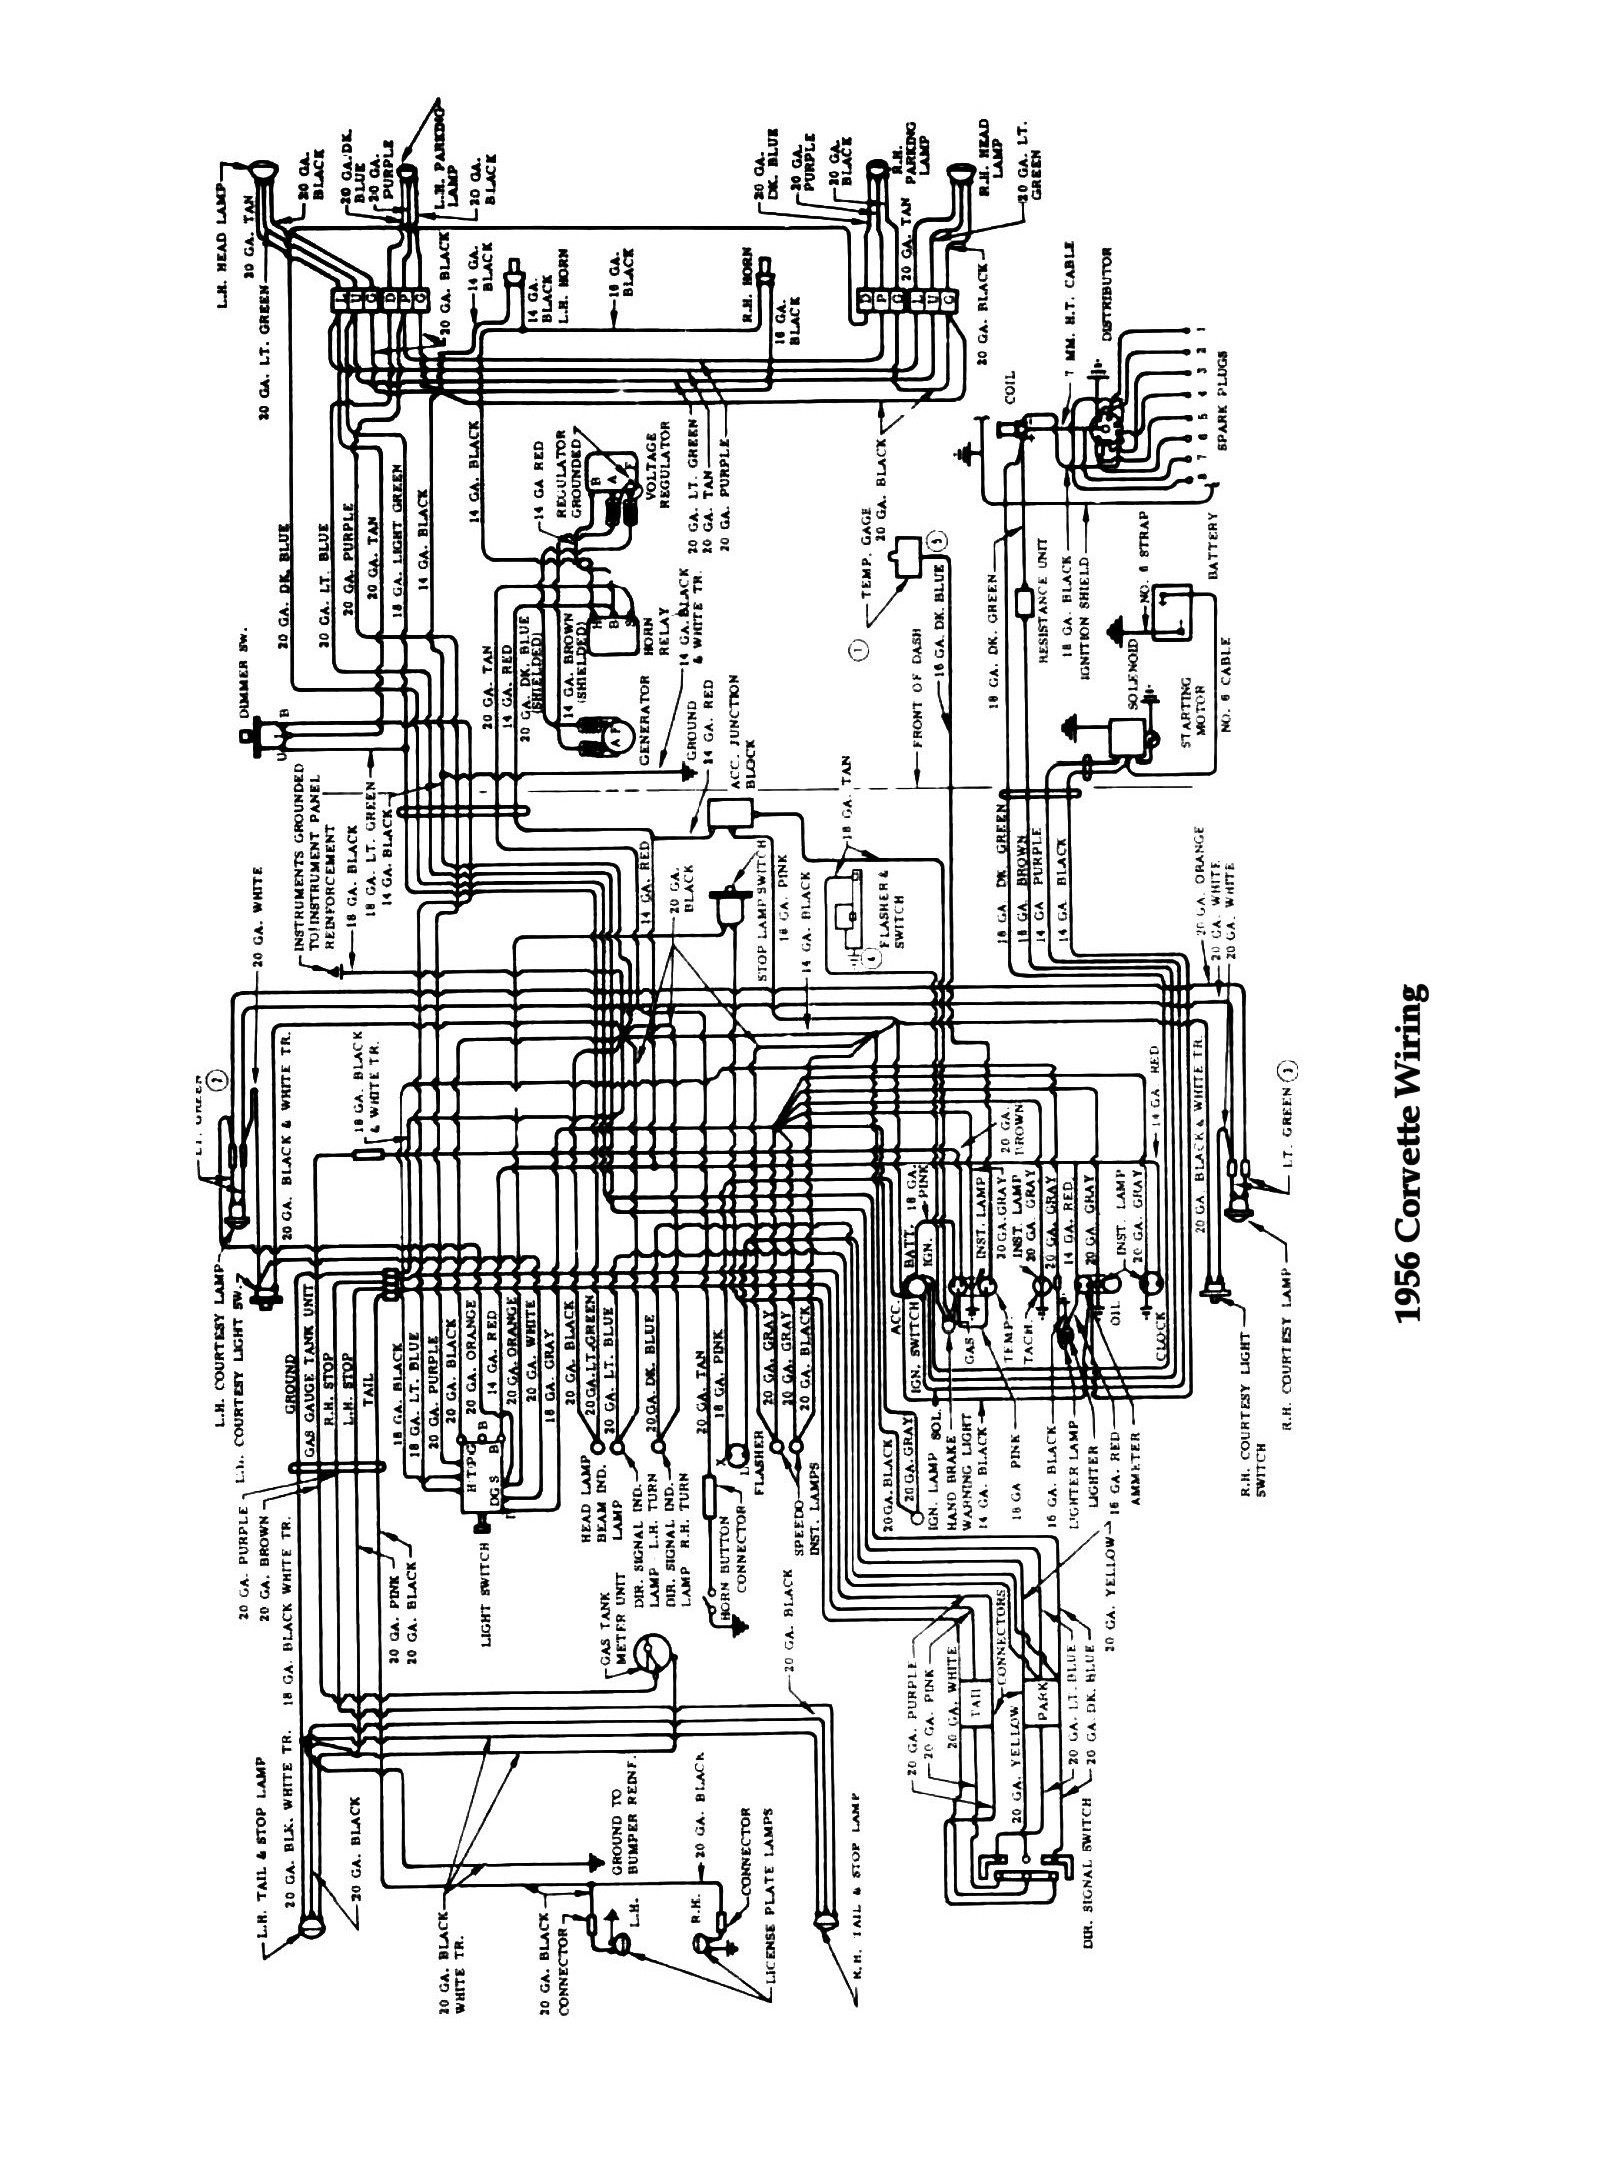 Chevy Wiring Diagrams Harness For 49 Ford F1 Free Download Diagram Schematic 1957 Corvette